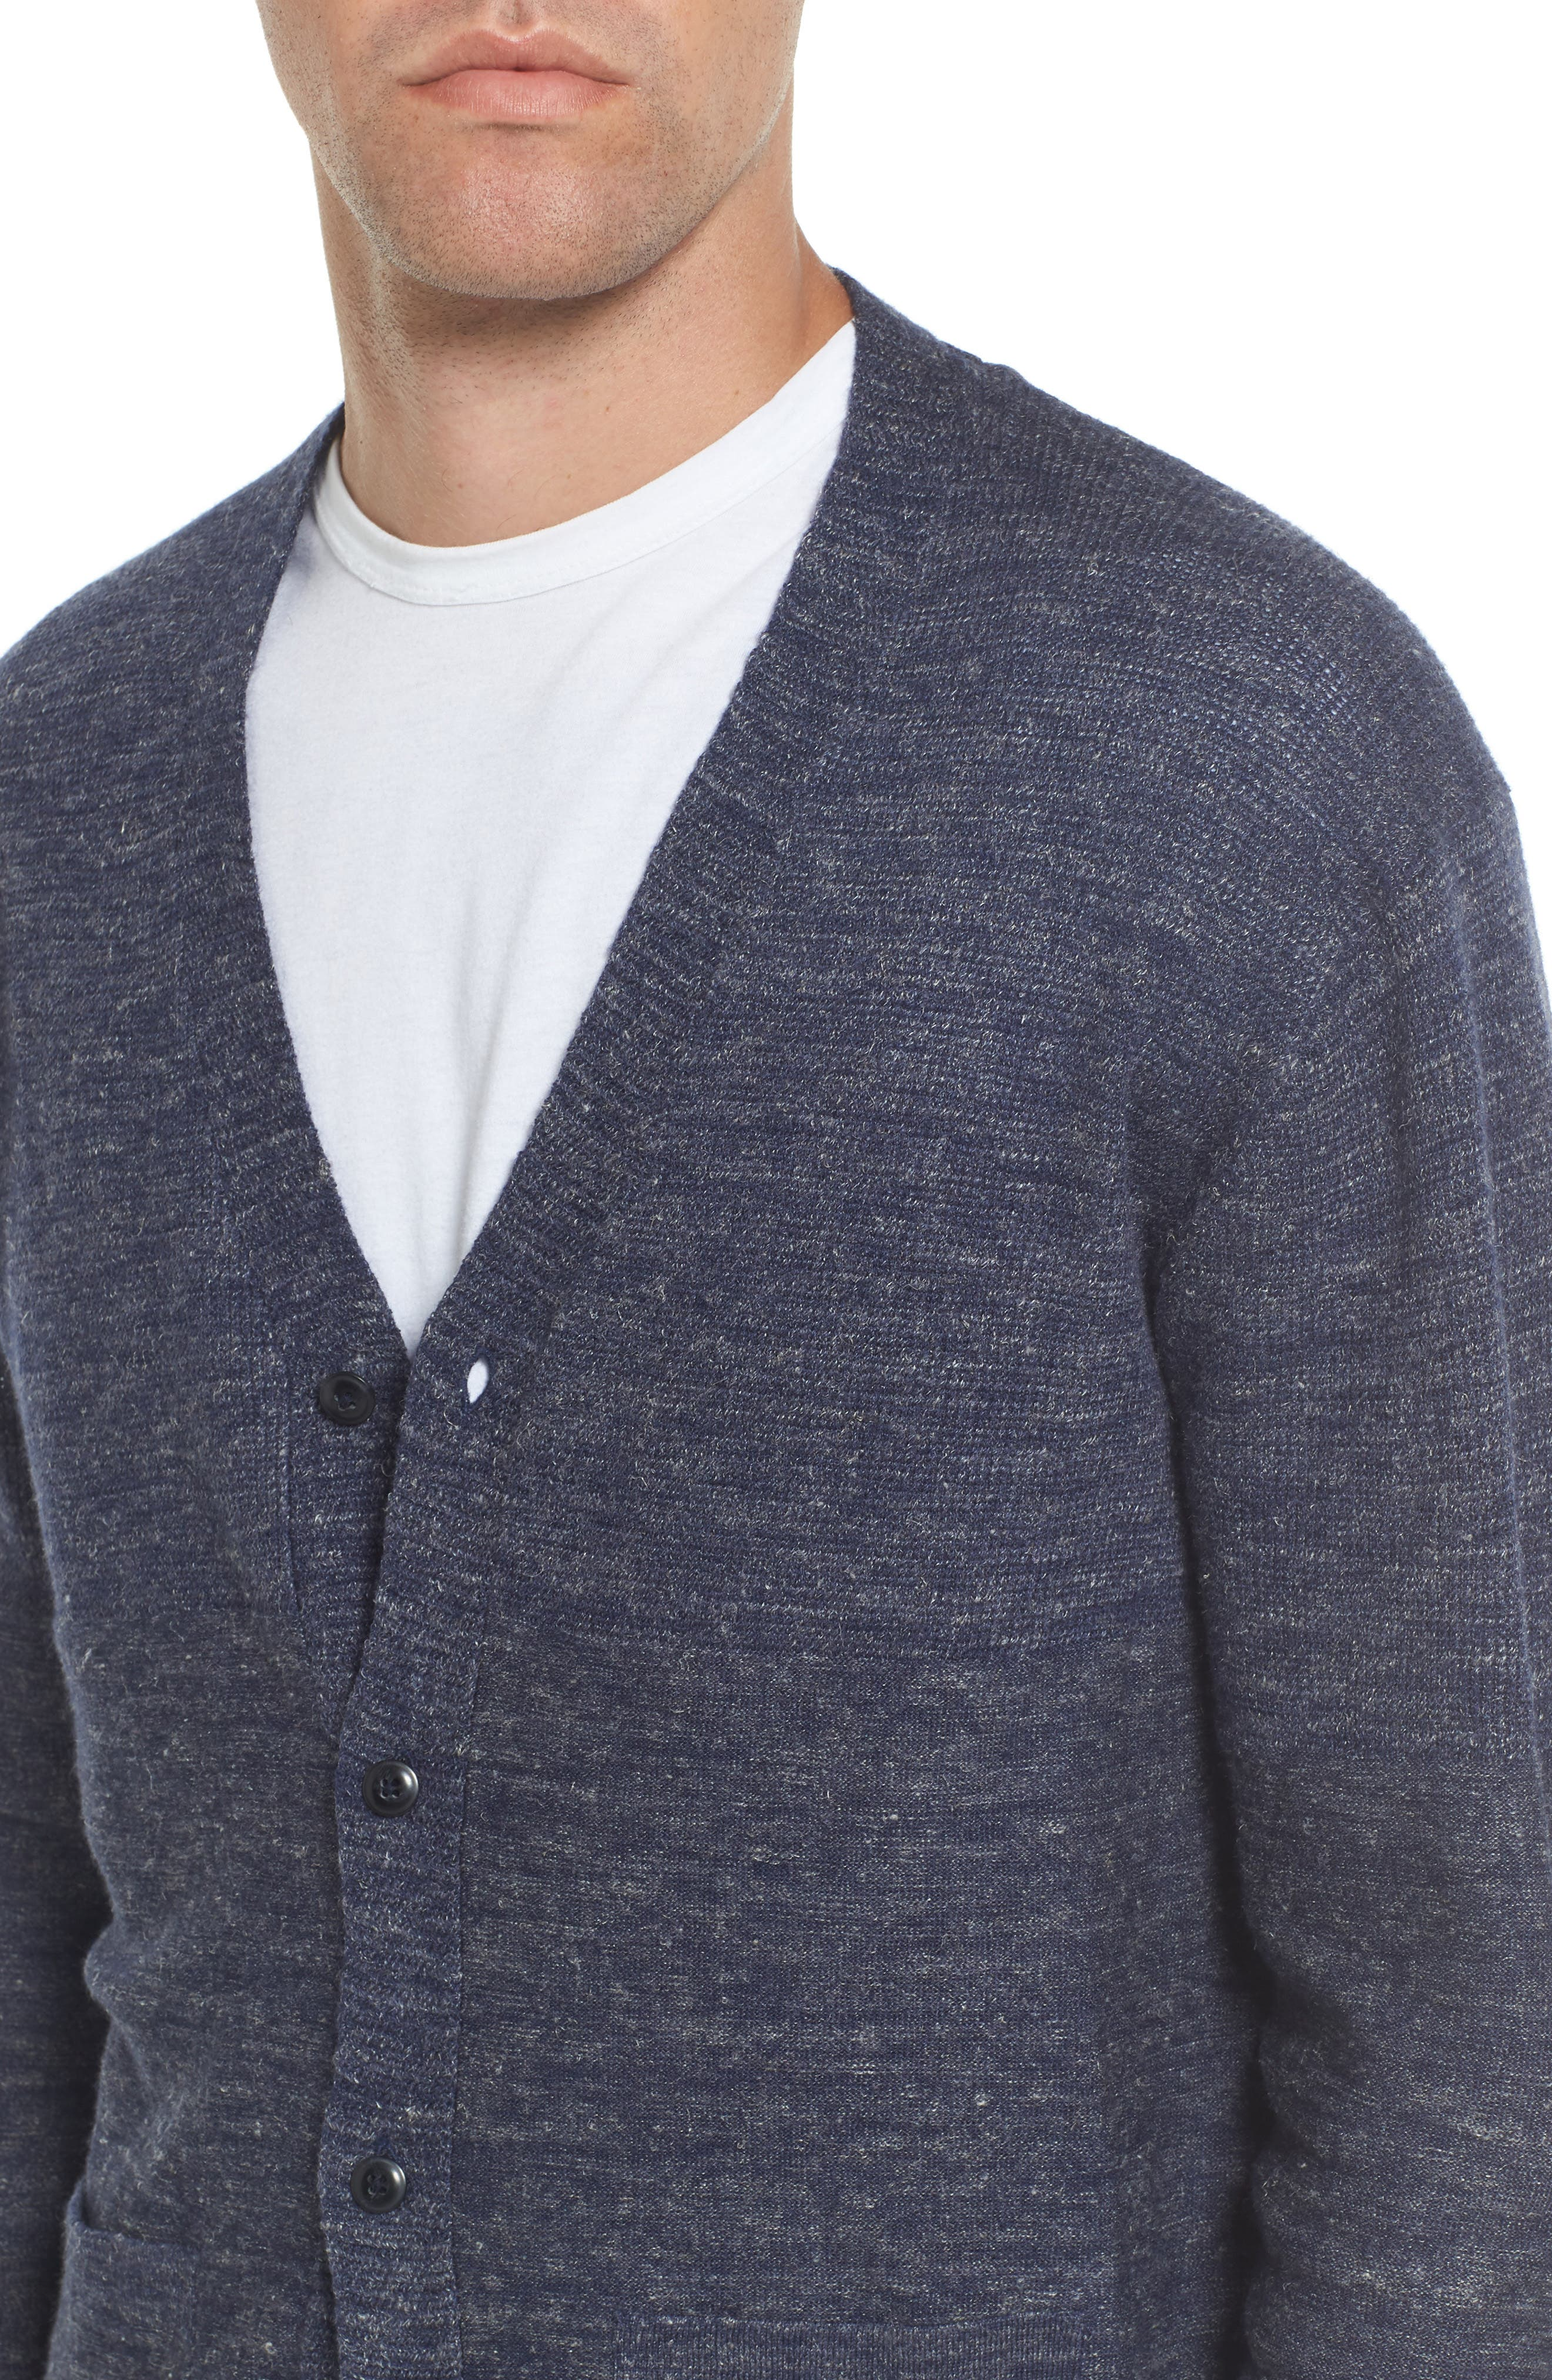 Wadsworth Modern Fit Wool & Linen Cardigan,                             Alternate thumbnail 4, color,